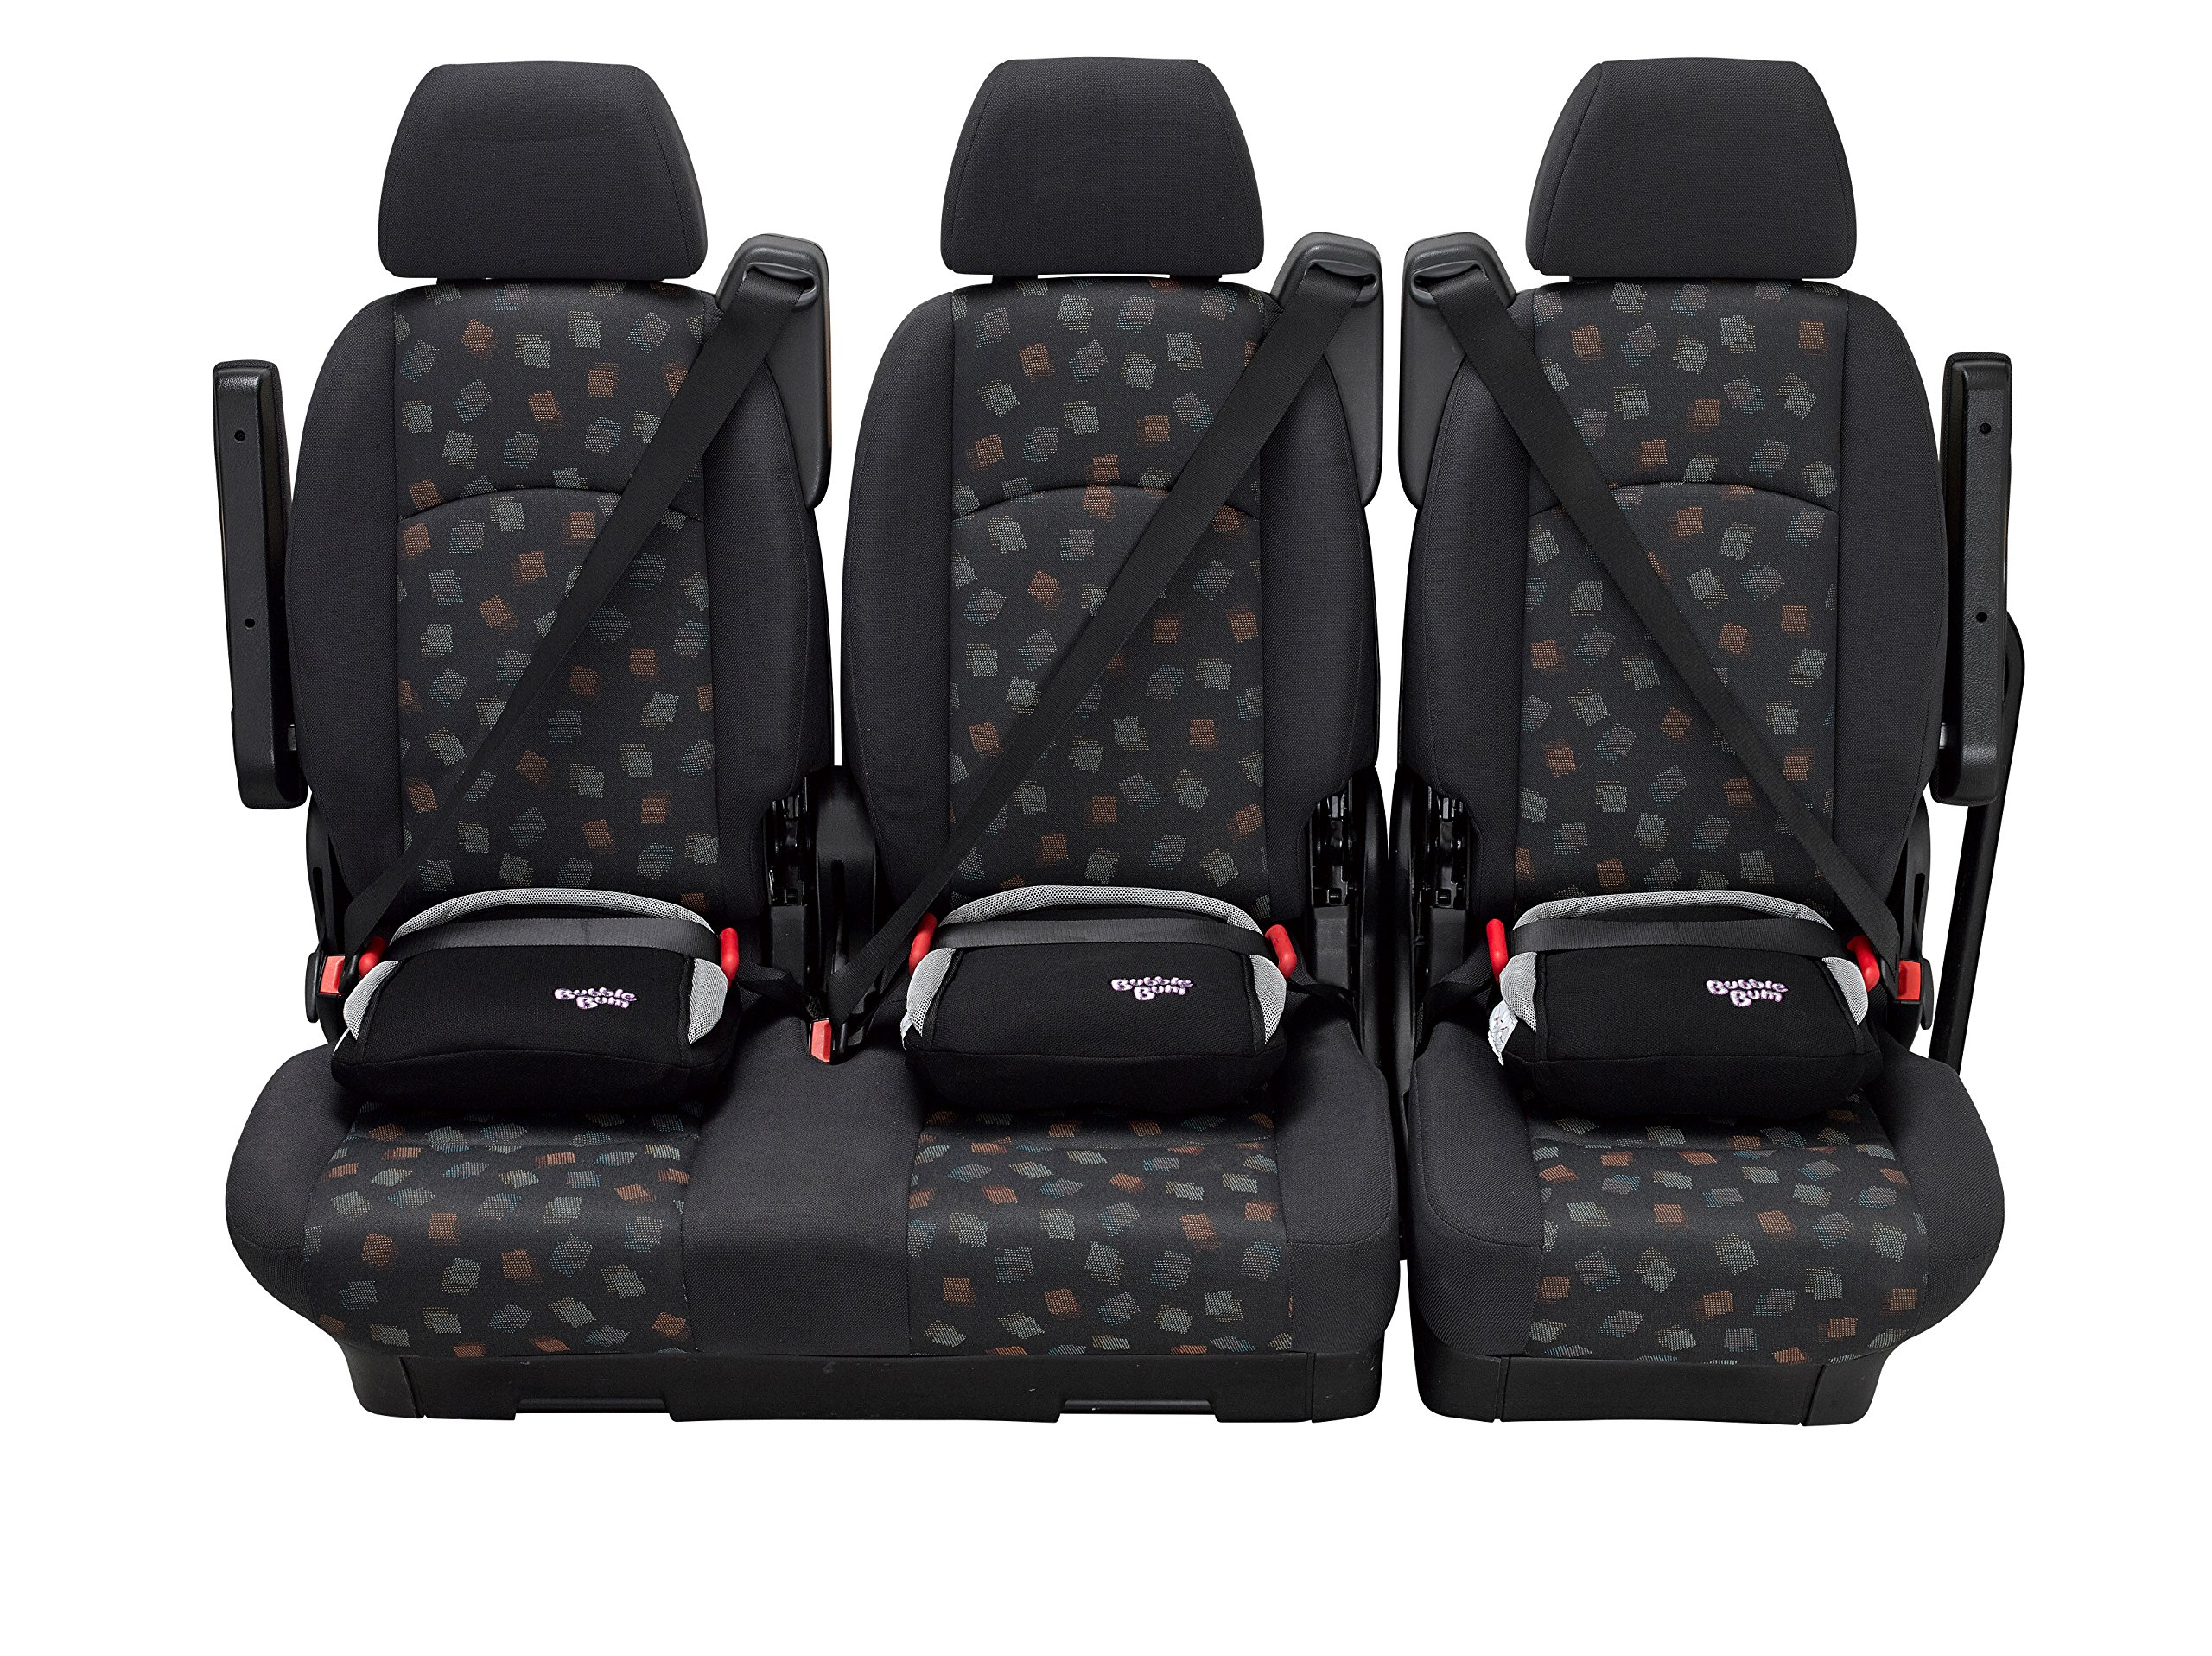 BubbleBum Inflatable Travel Car Booster Seat, Group 2/3, Black  The Award Winning BubbleBum Car Booster Seat The Inflatable, portable & safe booster seat for children aged 4 - 11, 15 - 36kg (with the provision of a vehicle headrest) Approved to the EU Safety Standard R44.04 for both Groups 2 and 3. Dimension - When inflated the seat measures 11 x11 x 4.5 Inches.  When deflated the seat measures 11.8 x 5.9 x 3.9 Inches.  Tip - ideal as you can now fit three across the back 3